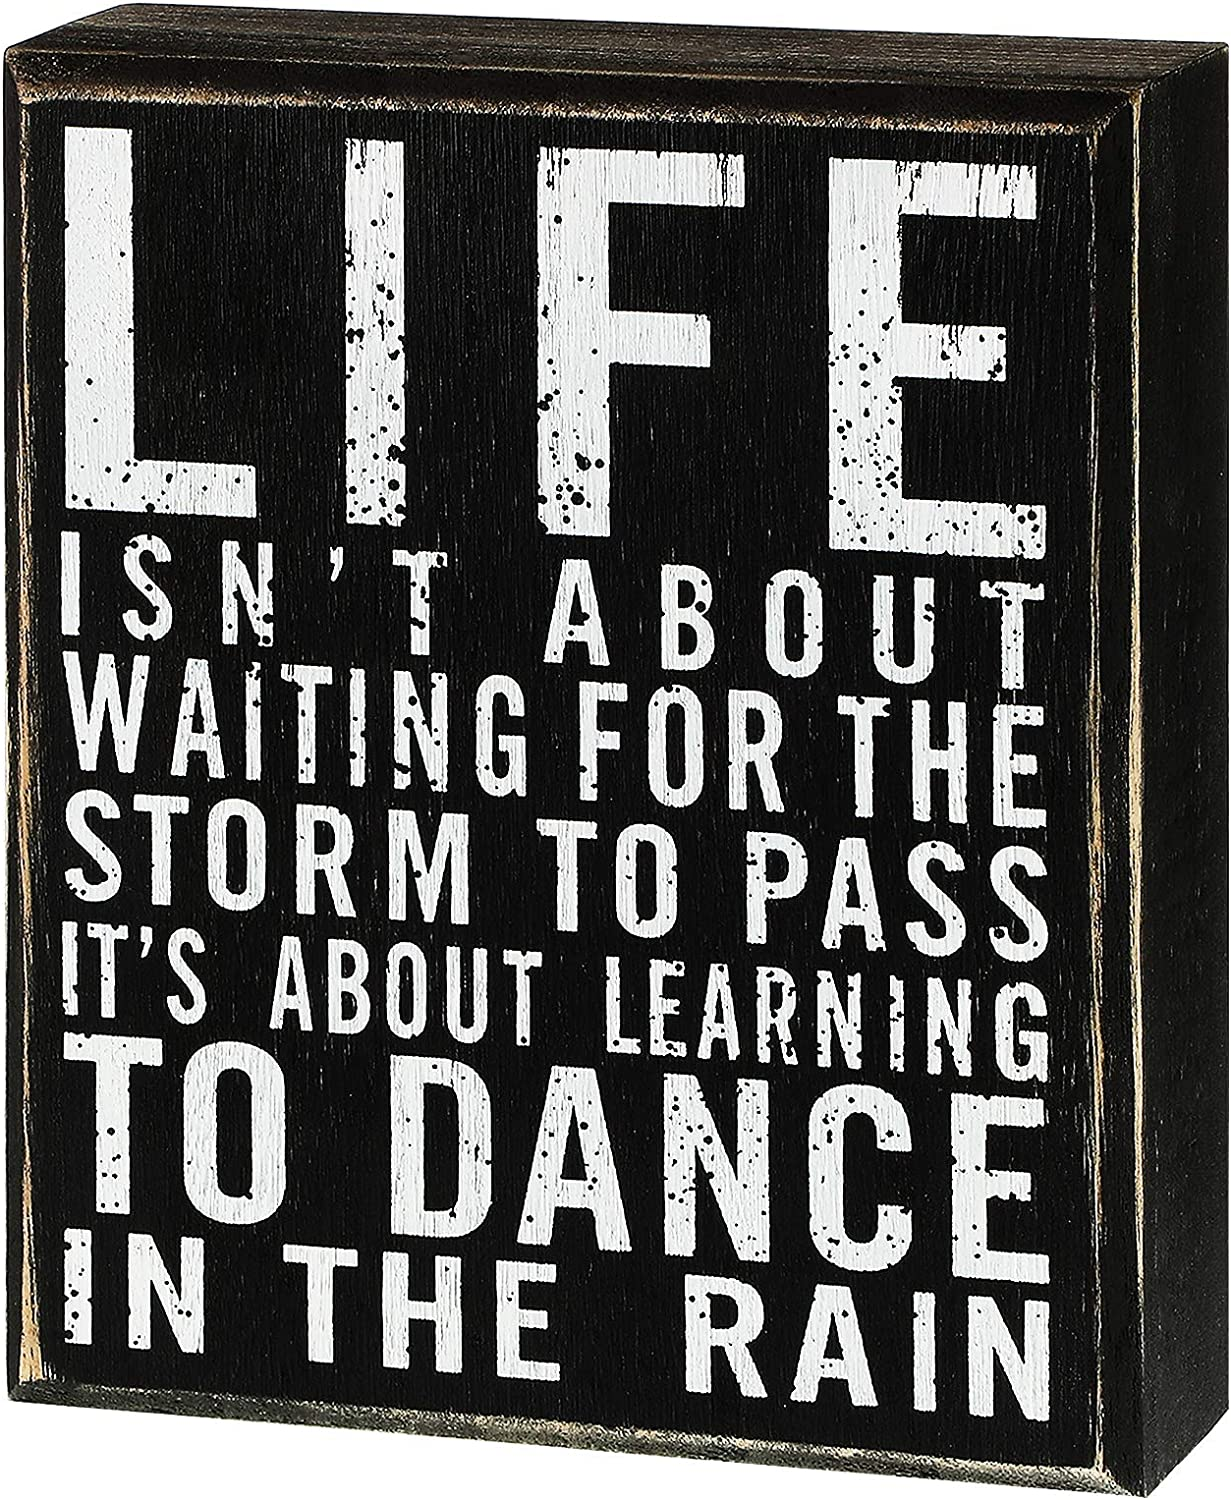 Jetec Classic Box Sign Wood Plaque with Inspiring Quotes Wall and Tabletop Decoration, 6 x 7 x 1.77 inch, Dance in The Rain